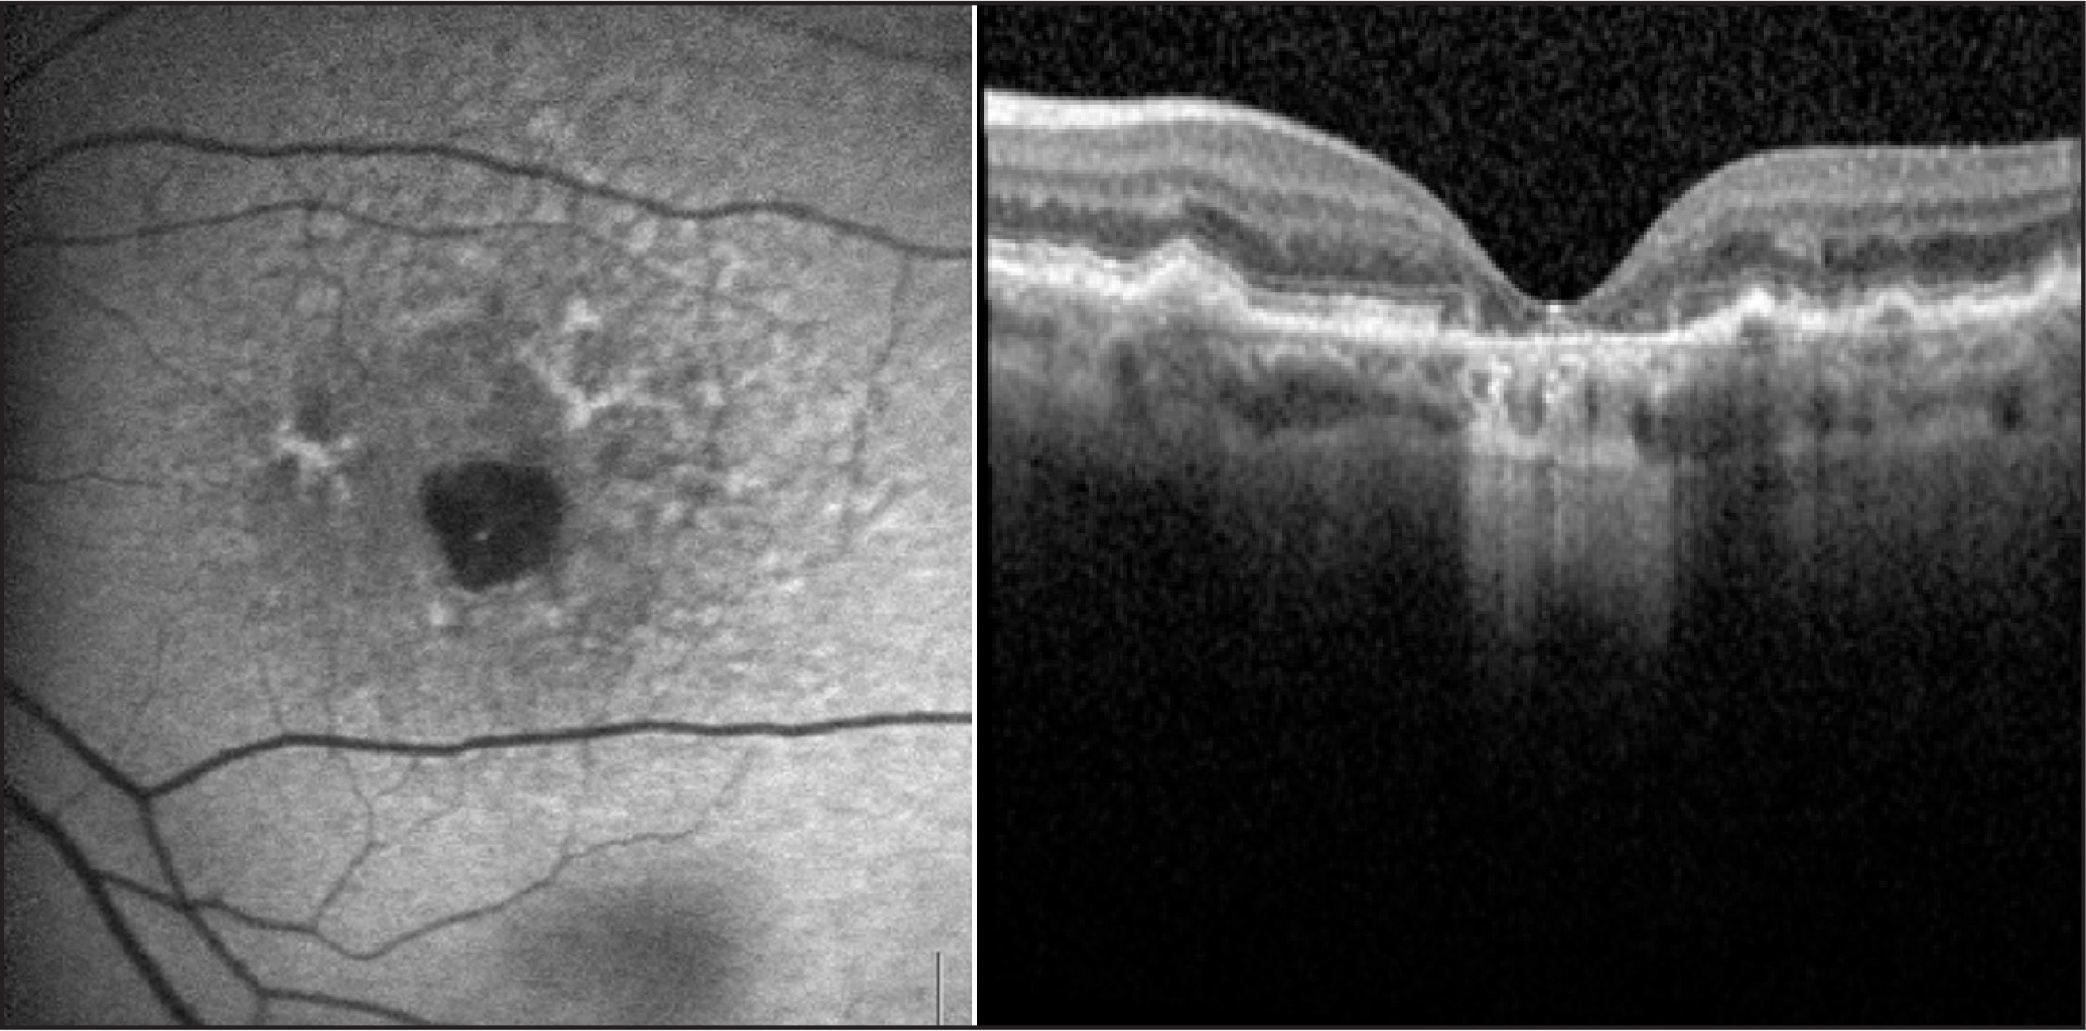 Retrofoveal atrophy in the left eye of a 76-year-old woman with pattern dystrophy. Left: Left eye fundus autofluorescence image with a foveal hypofluorescent lesion corresponding to retinal atrophy, surrounded by hyperautofluorescent lesions corresponding to materiel deposits. Right: Corresponding spectral-domain optical coherence tomography scan reveals thinning of retinal layers and choroidal signal enhancement.